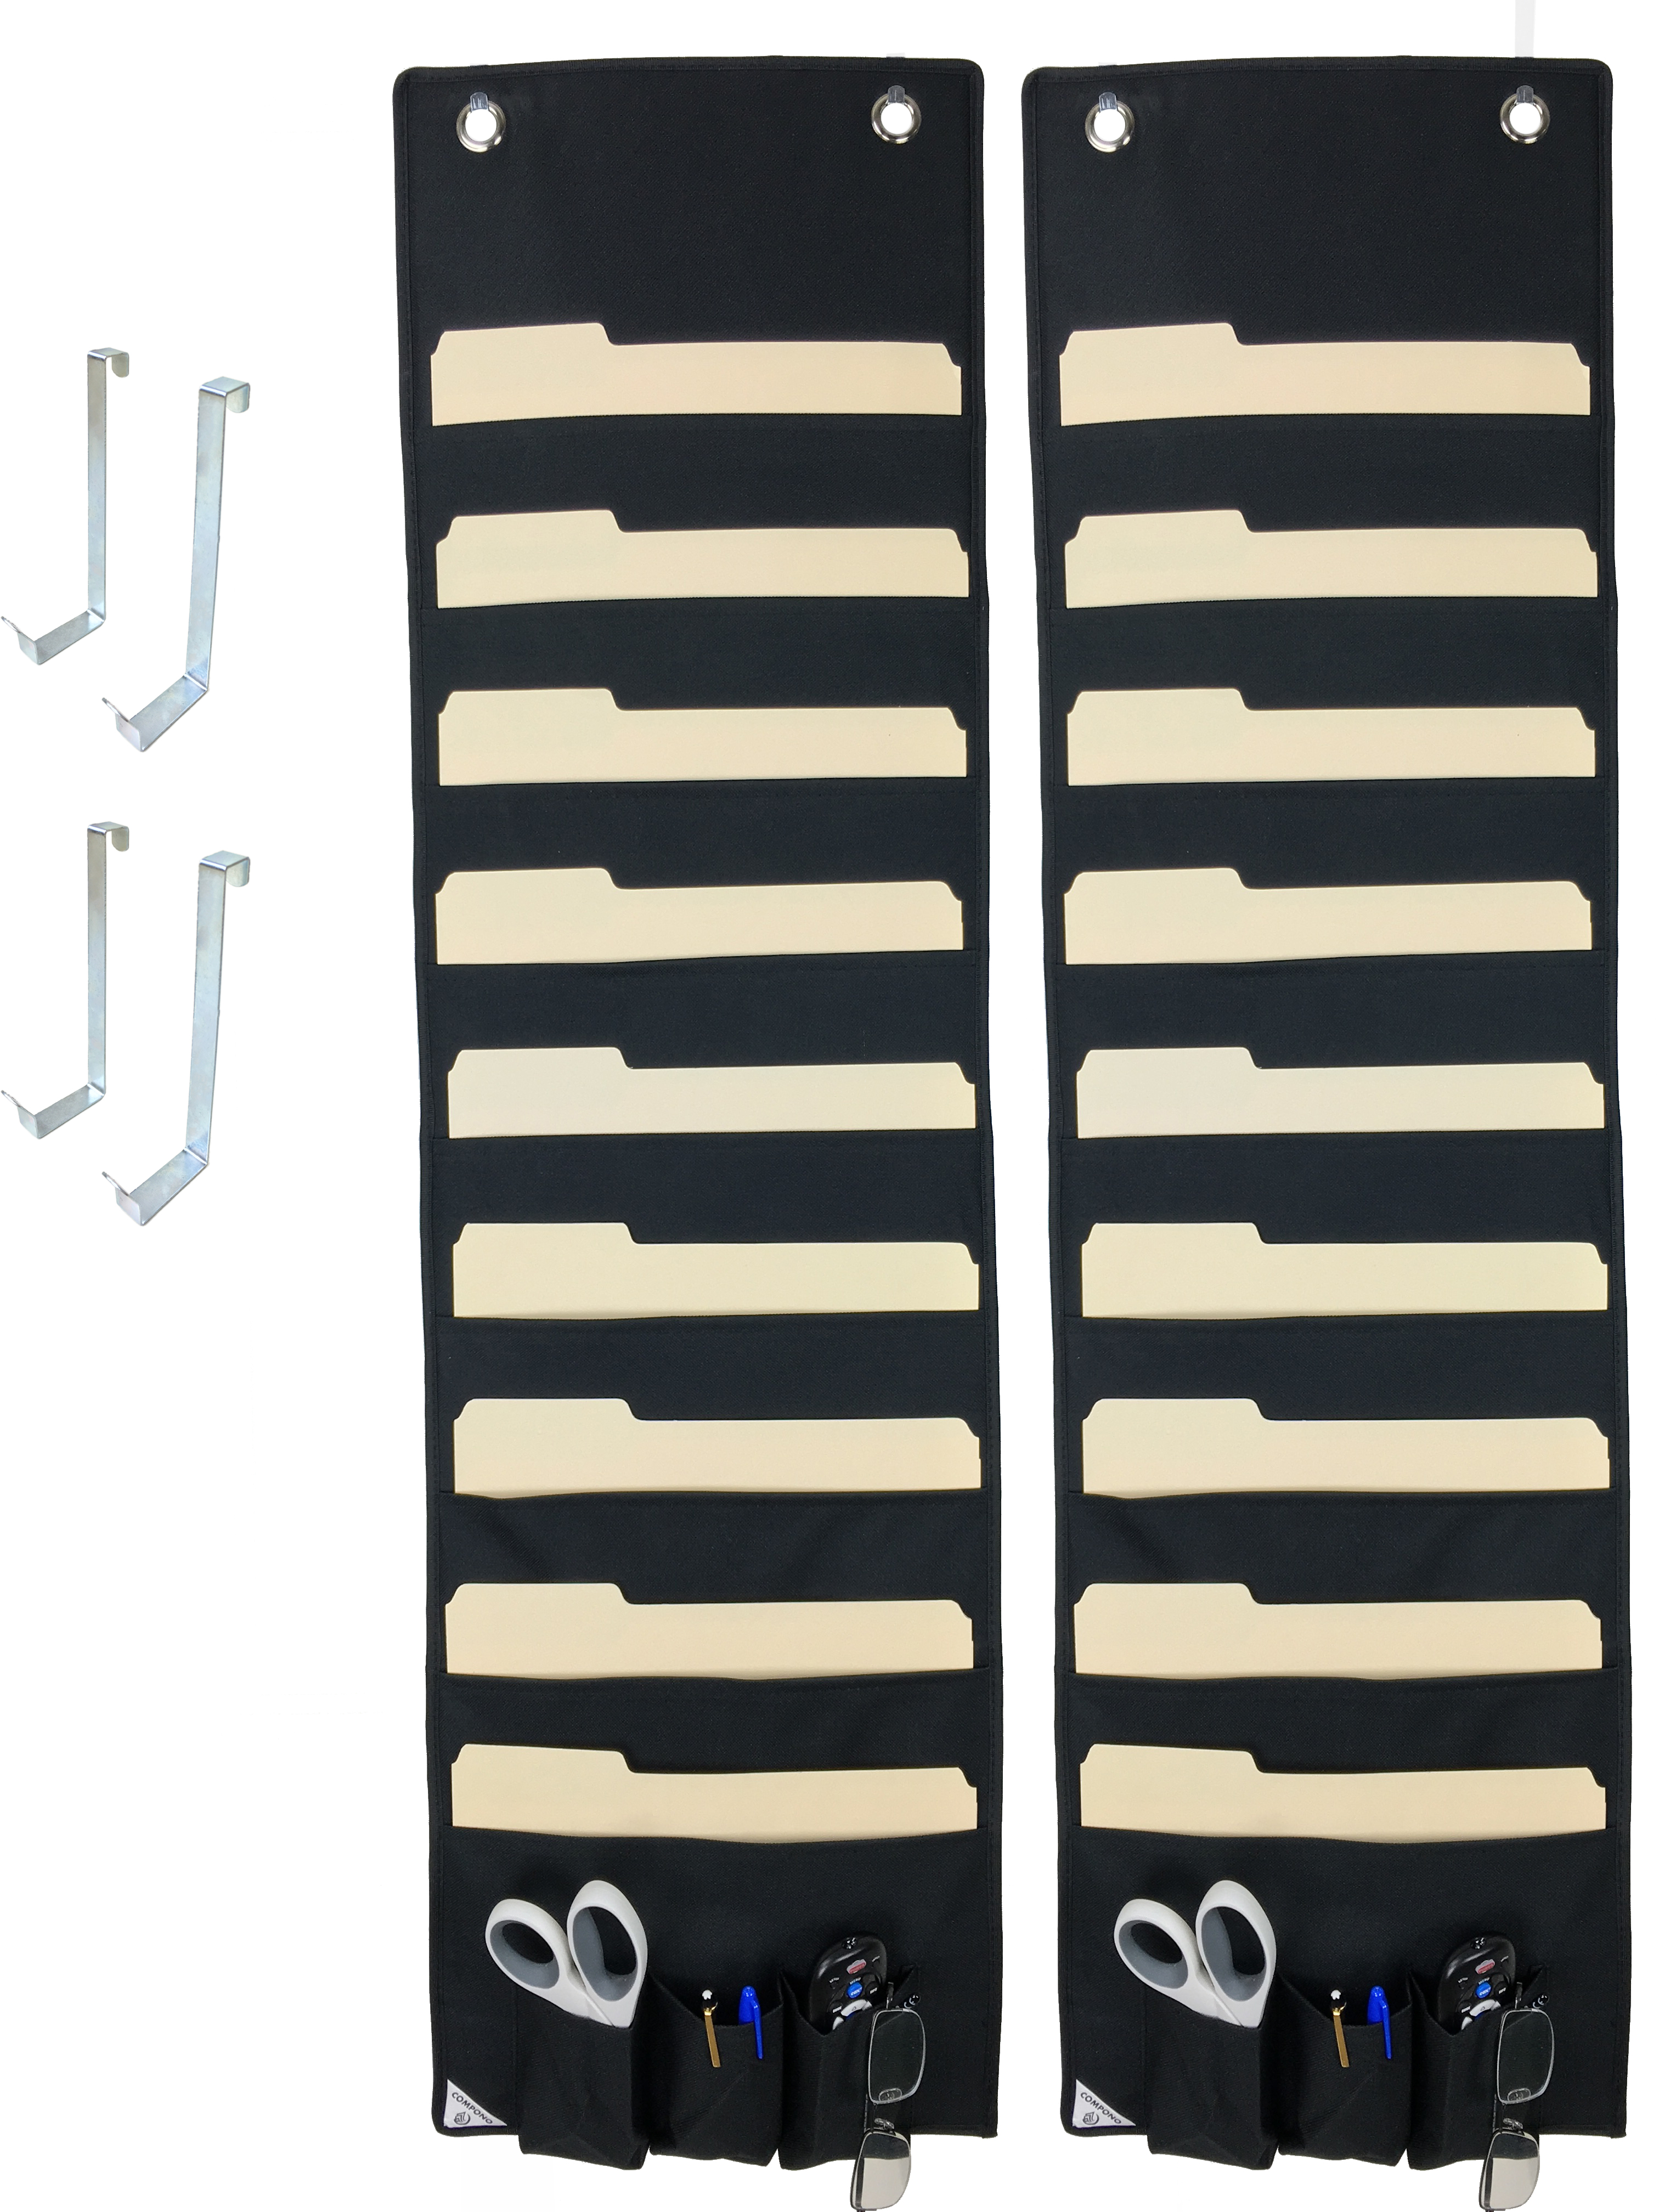 2 PACK COMPONO Premium Hanging File Folder Organizers with 9 Large Pockets, 3 Small Pockets, & 2 Hangers each.... by COMPONO